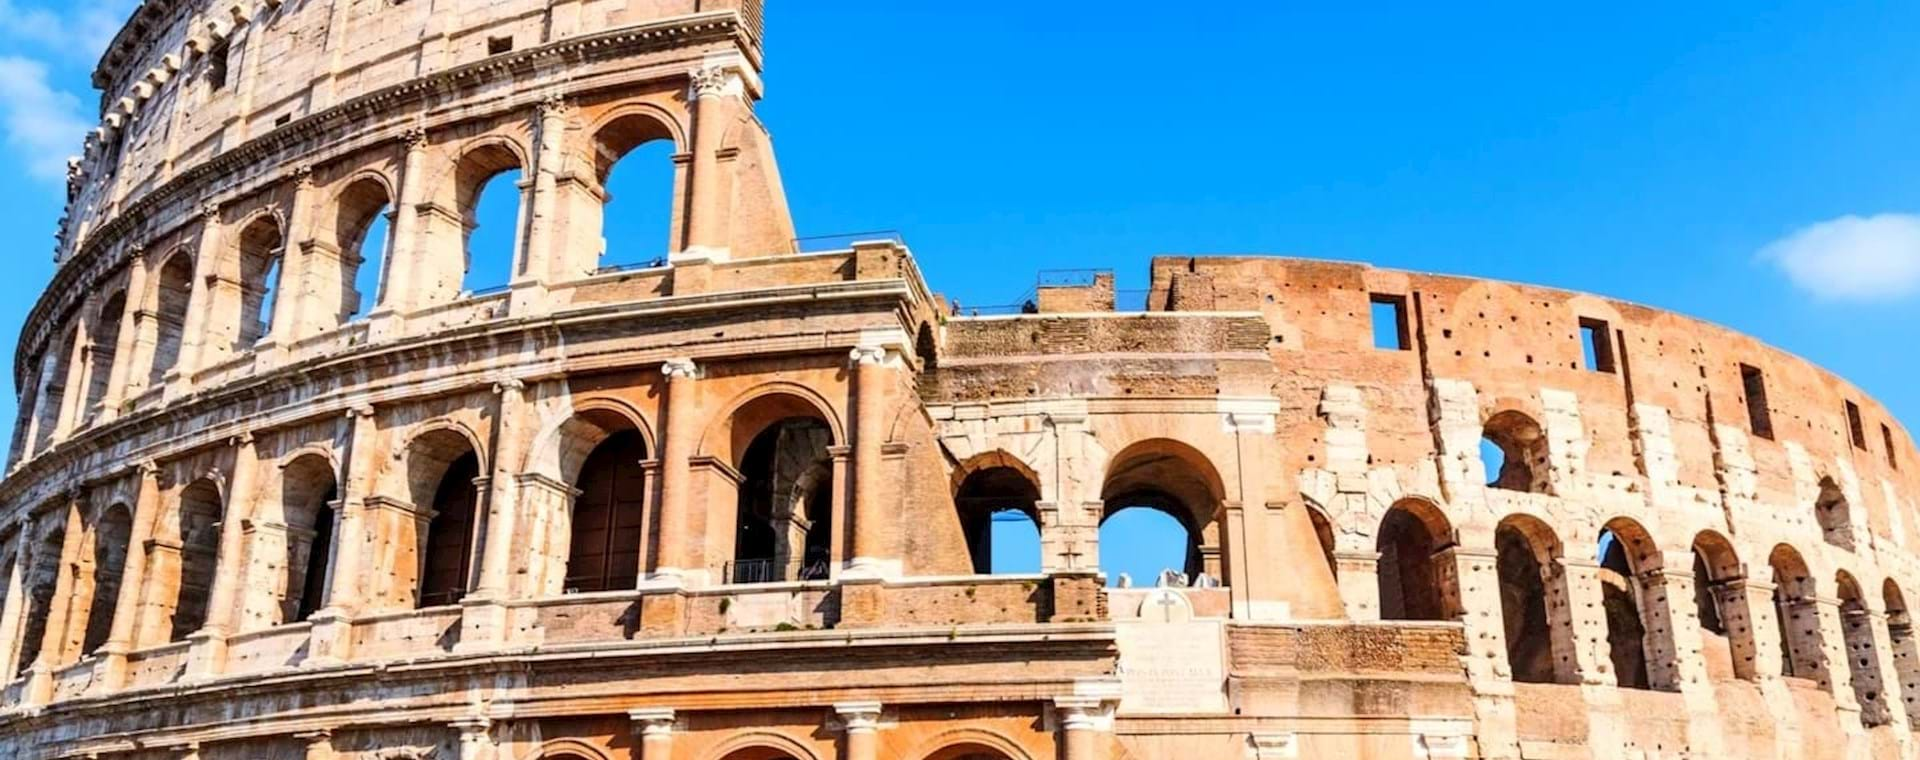 Private Colosseum Tour with Roman Forum and Palatine Hill